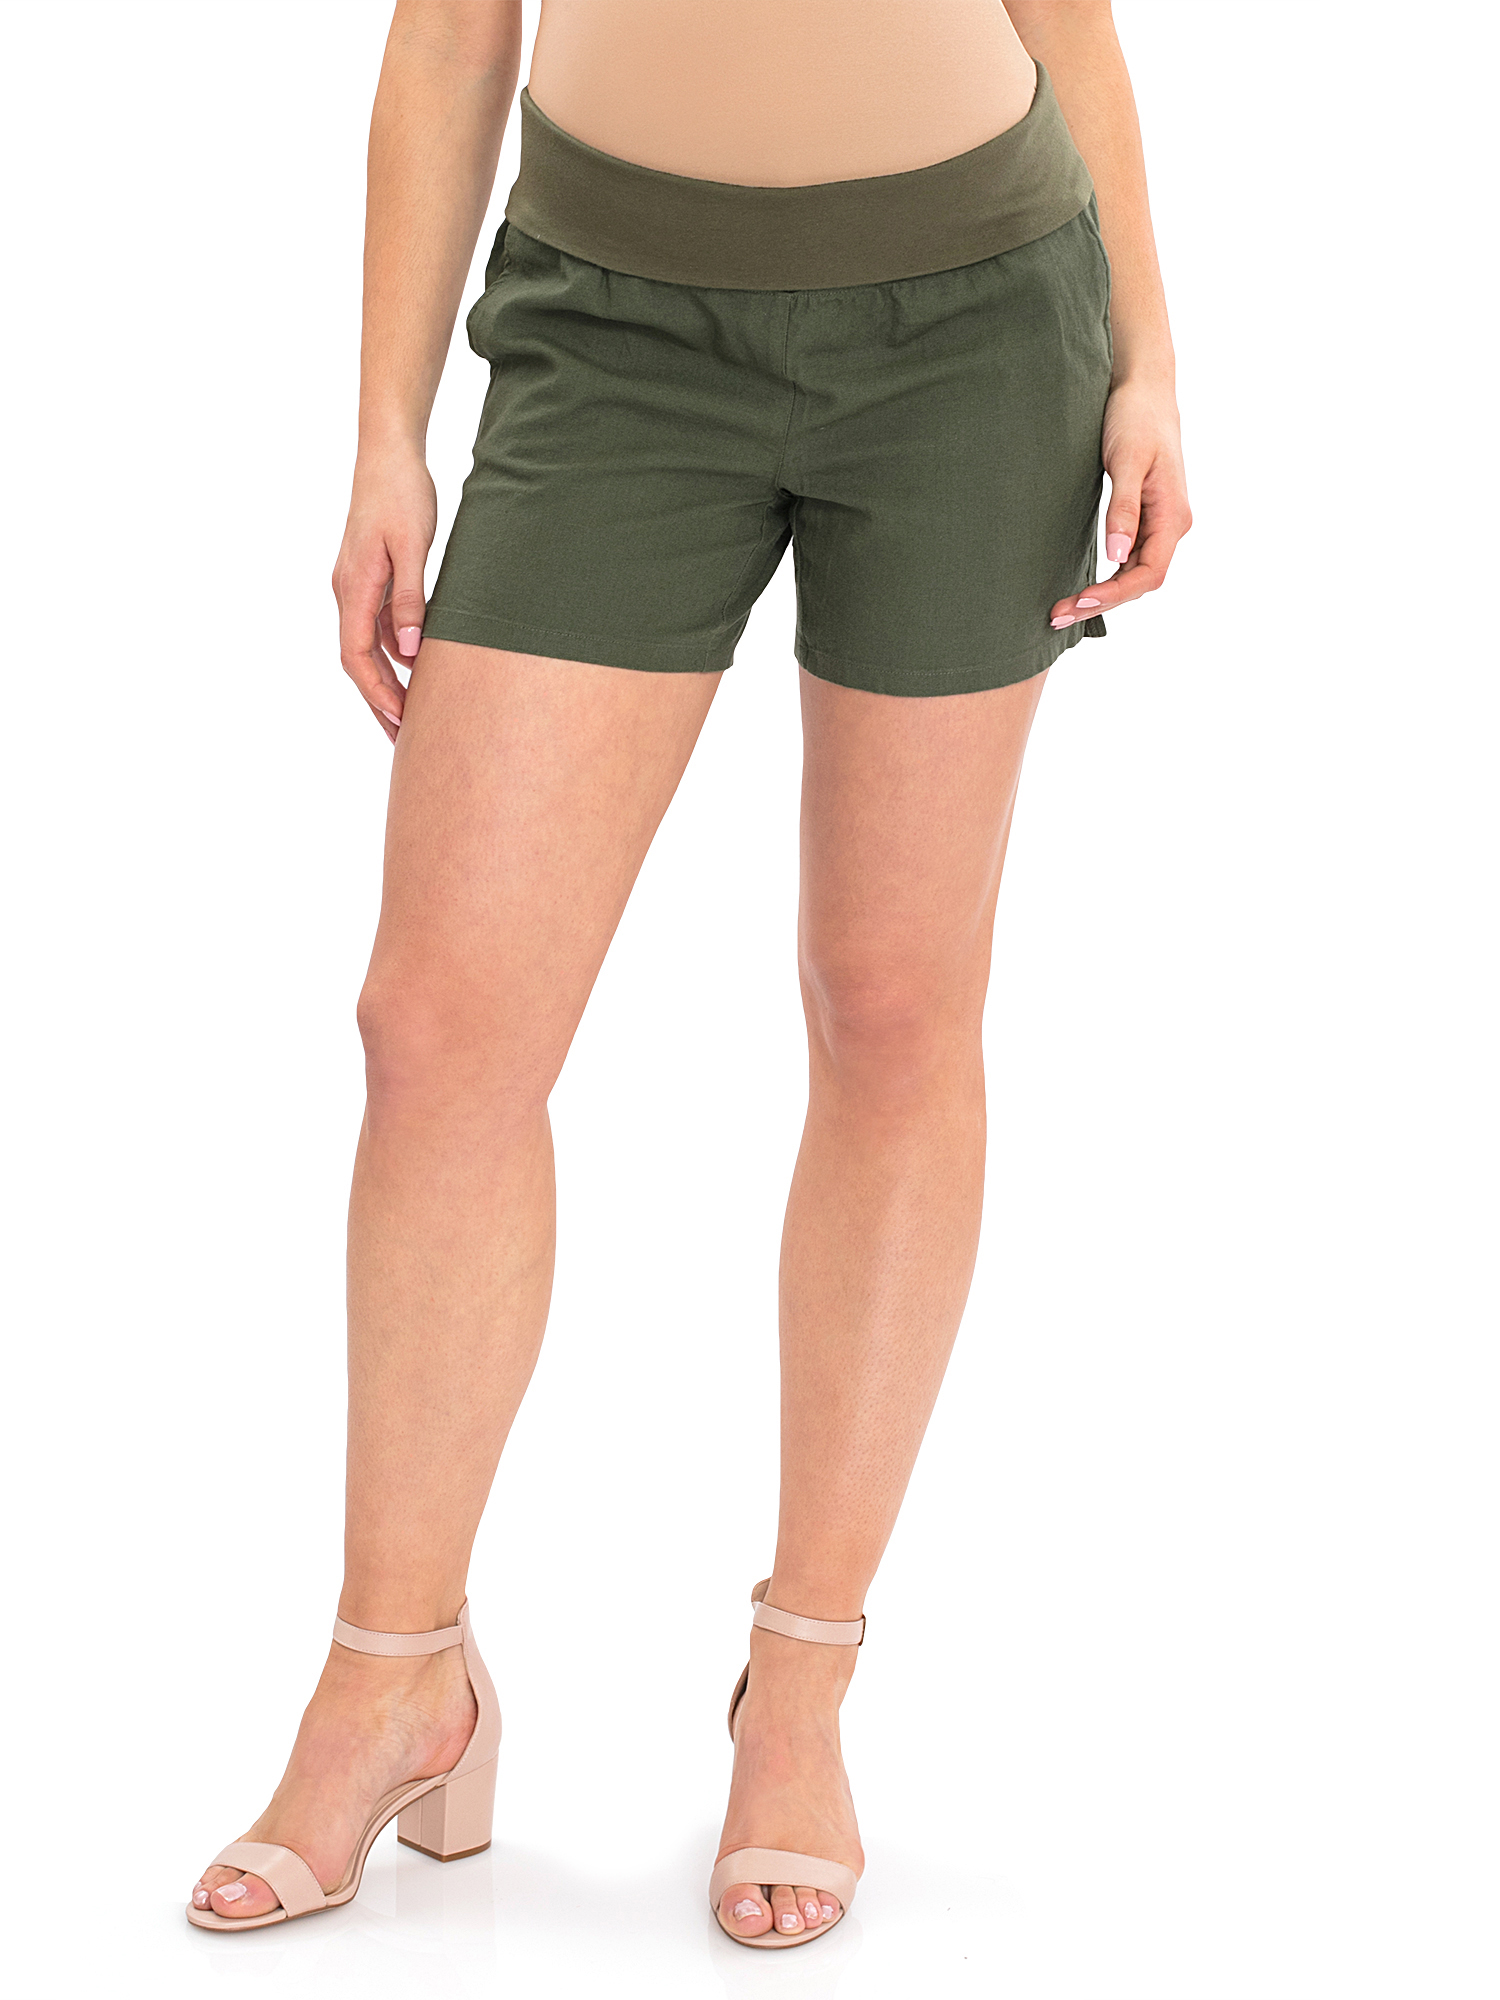 Maternity Woven Shorts by Generic